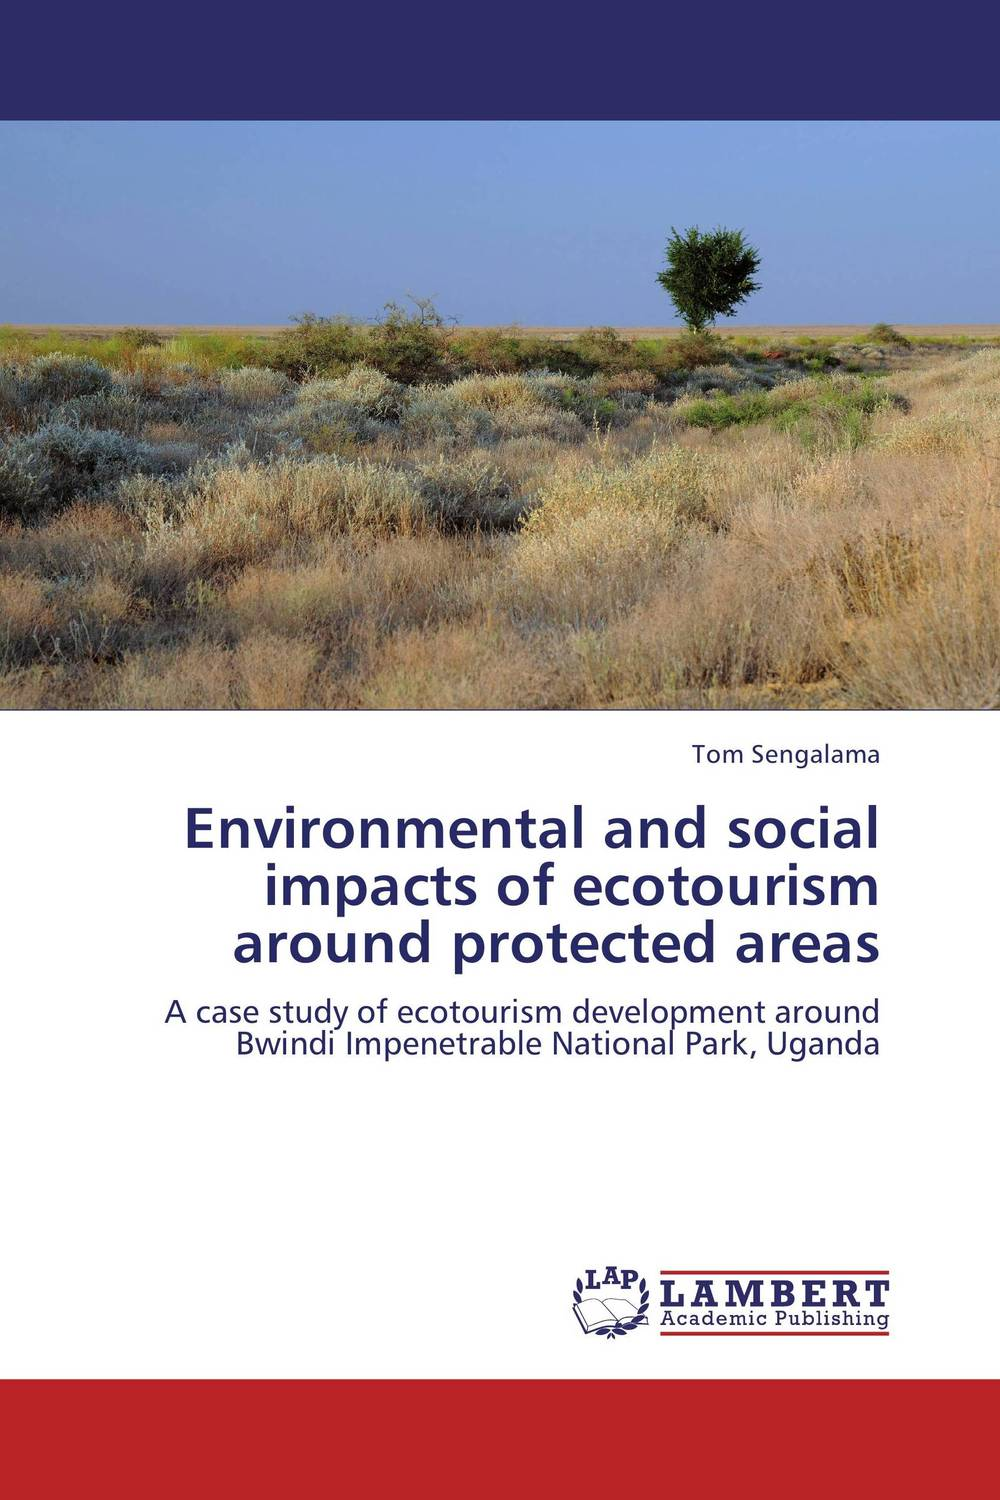 все цены на Environmental and social impacts of ecotourism around protected areas онлайн